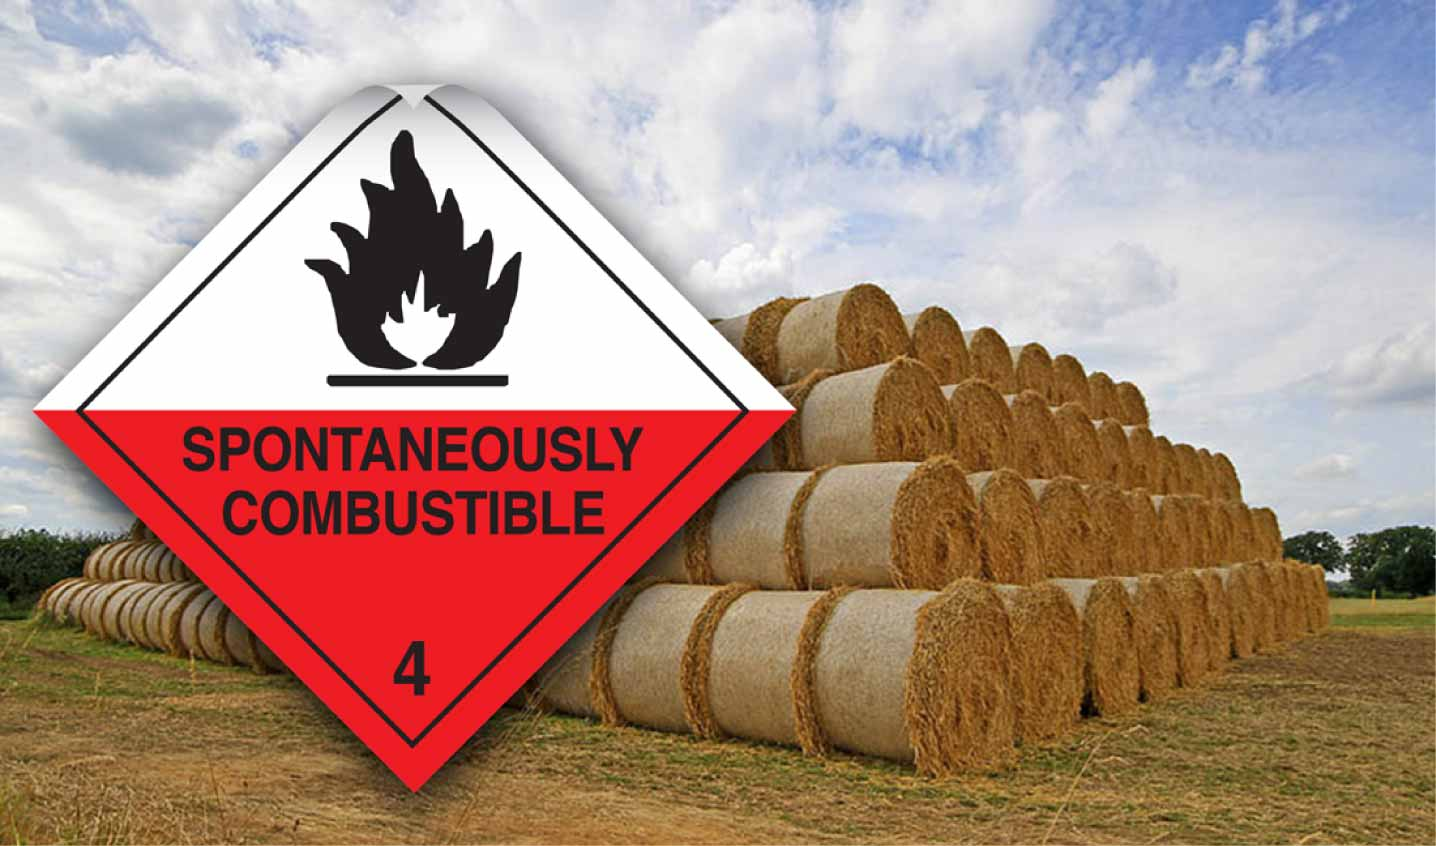 spontaneously combustible labels